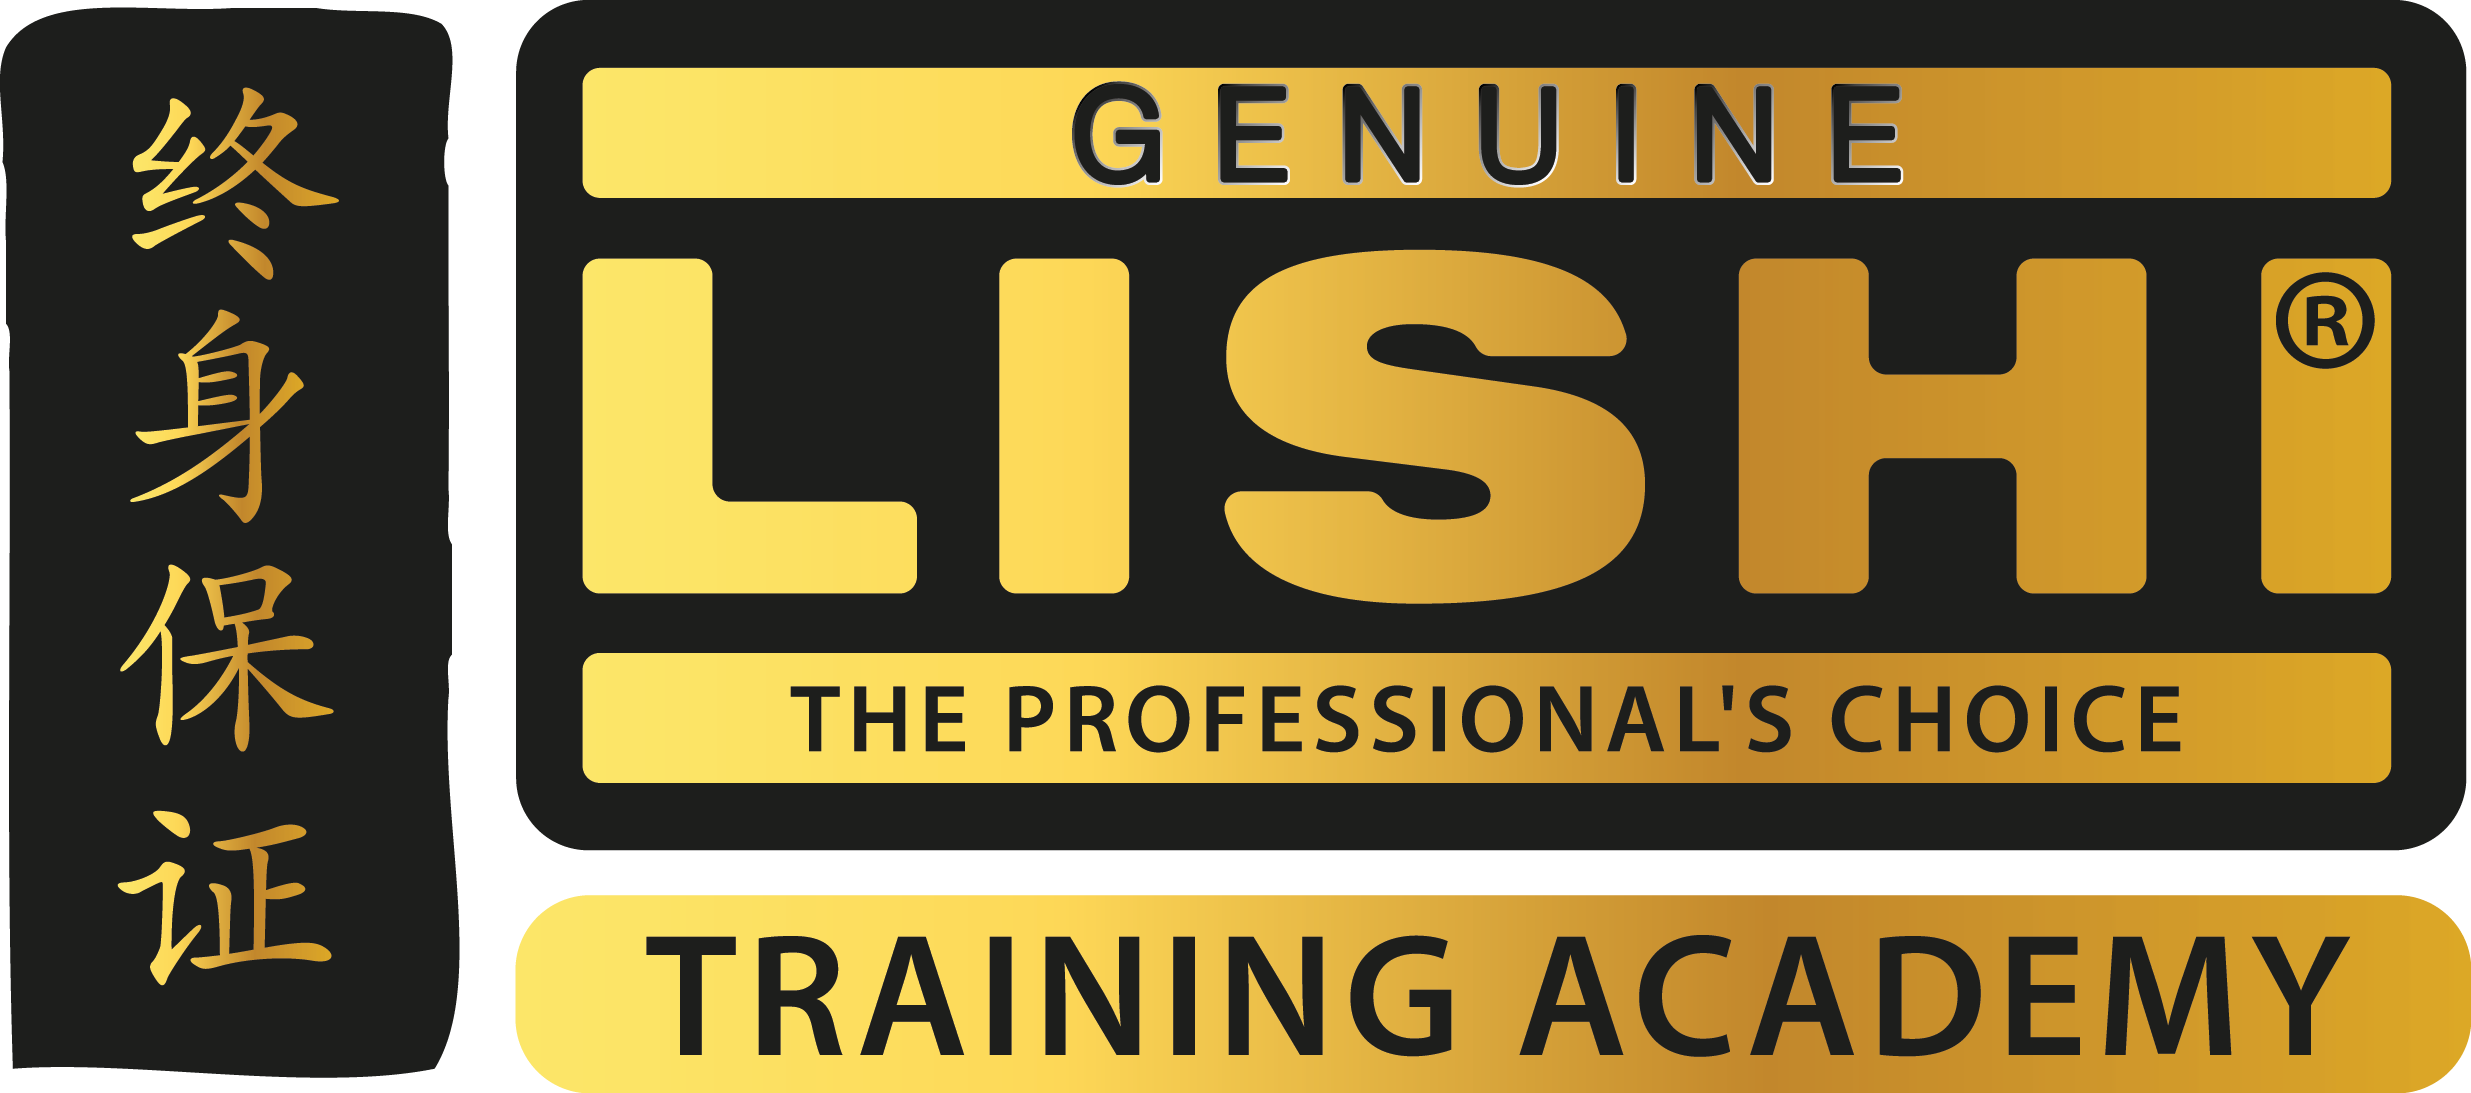 Genuine Lishi Training Academy